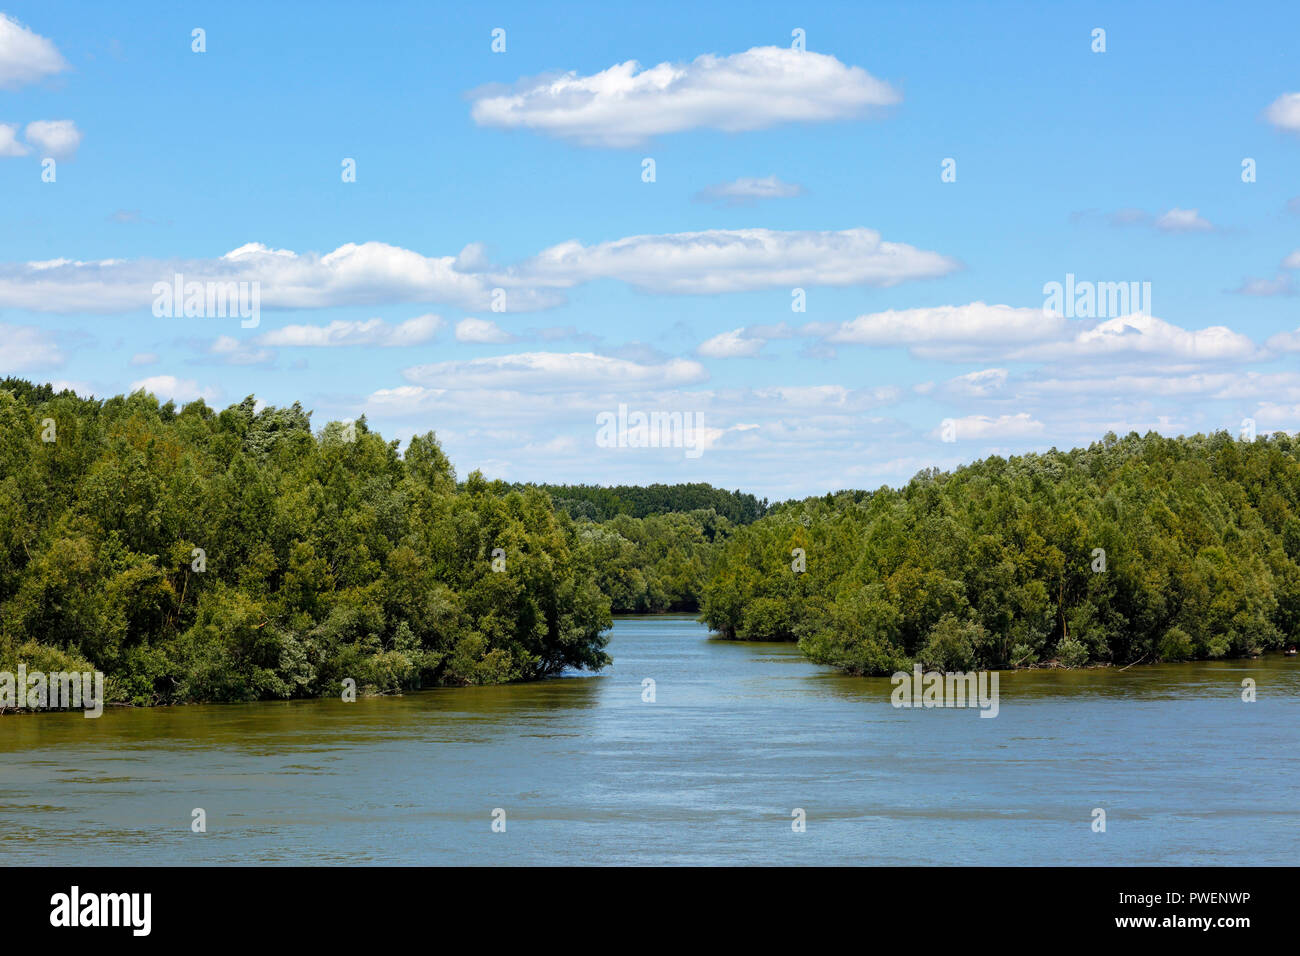 Hungary, Kandafok on the Danube between Mohacs and Dunaszekcsoe, Transdanubia, Southern Transdanubia, Baranya county, Danube-Drava National Park, Danube landscape, river landscape, holm, woodlands, alluvial forest, tributary stream, cumulus clouds - Stock Image